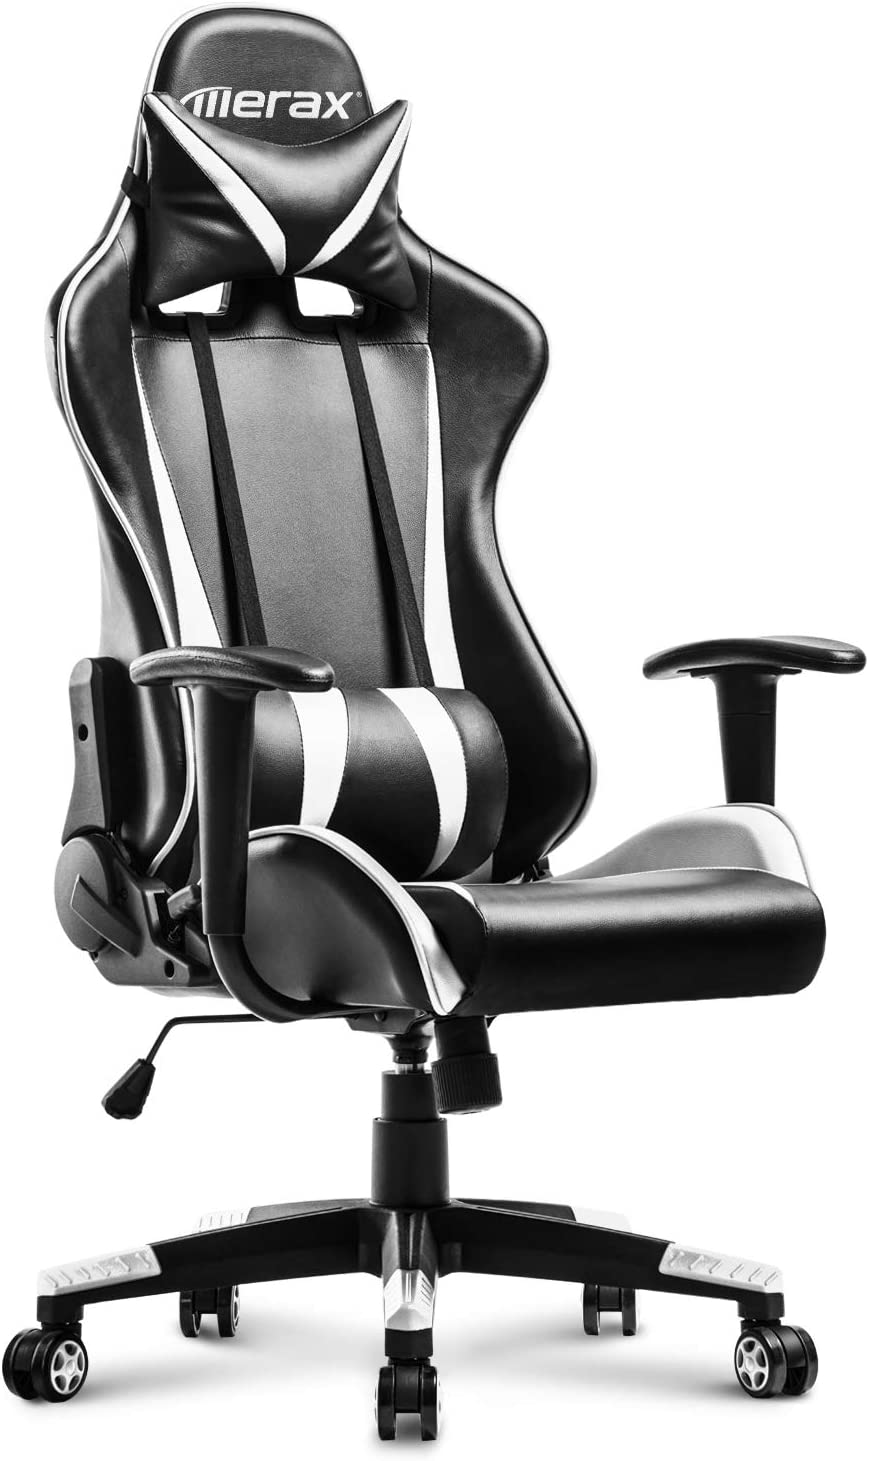 MIERES Racing Gaming High-Back Ergonomic Design Computer PU Leather Office Chair, White-033843